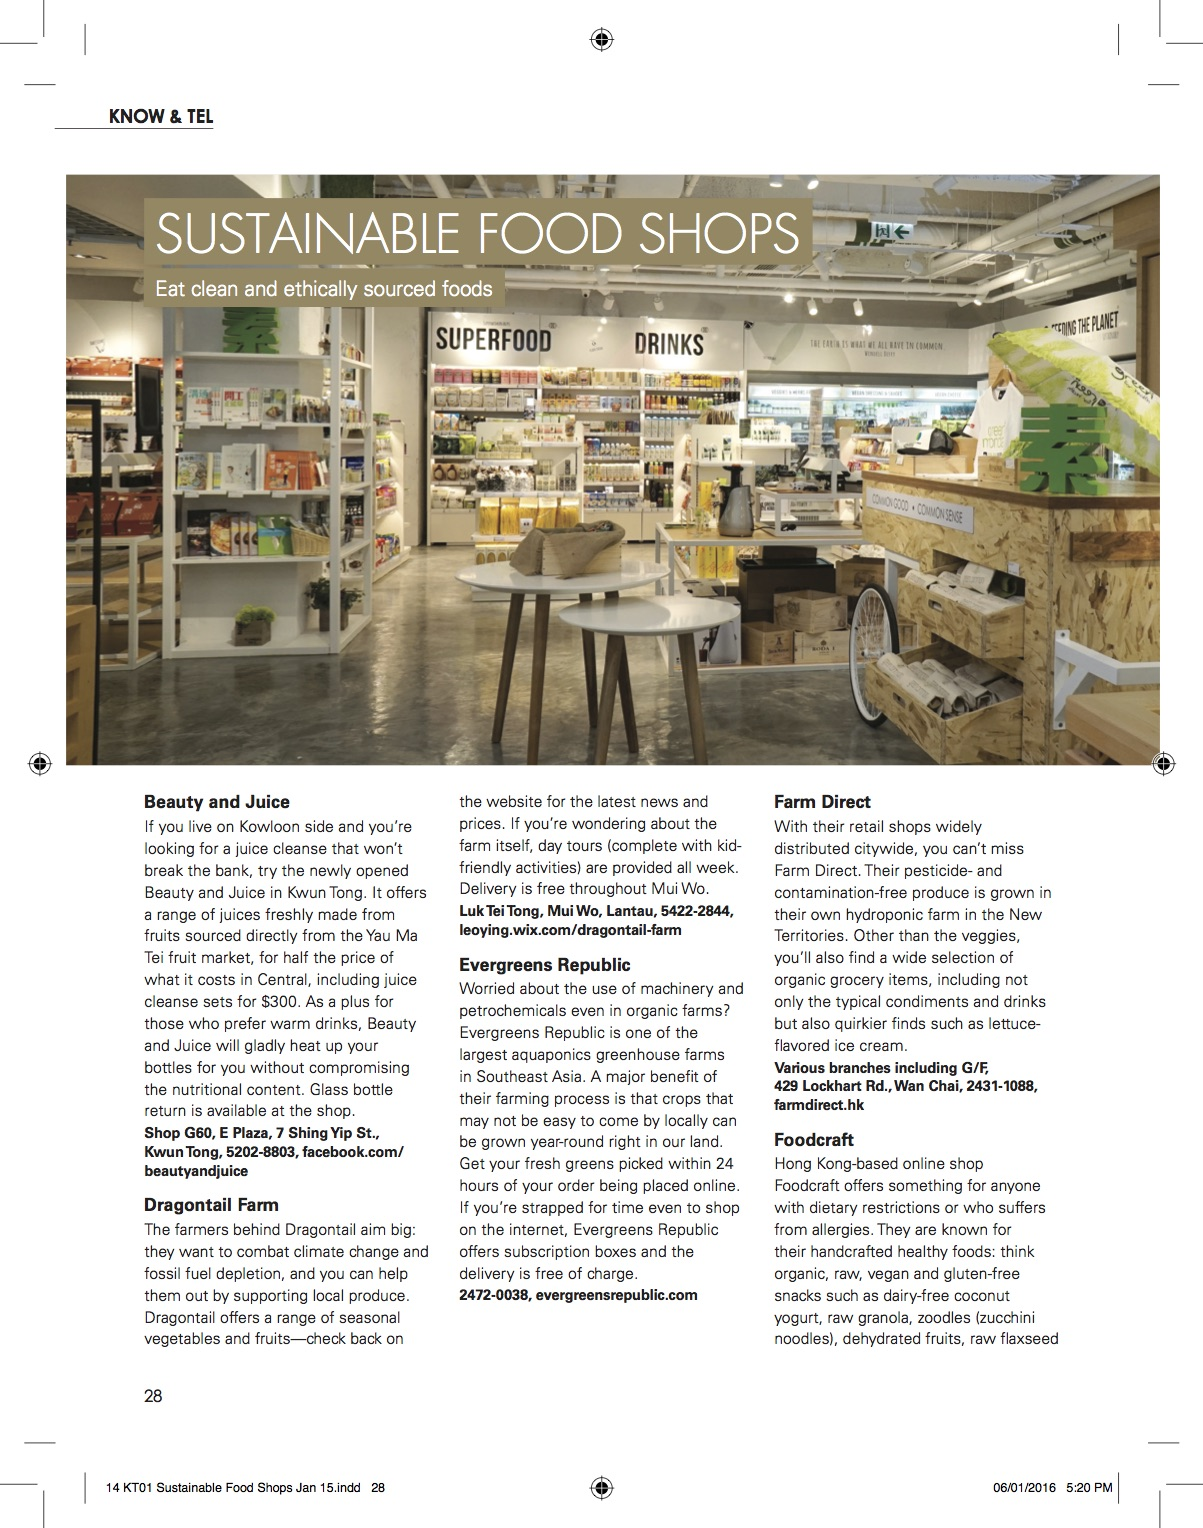 The List: Sustainable Food Shops